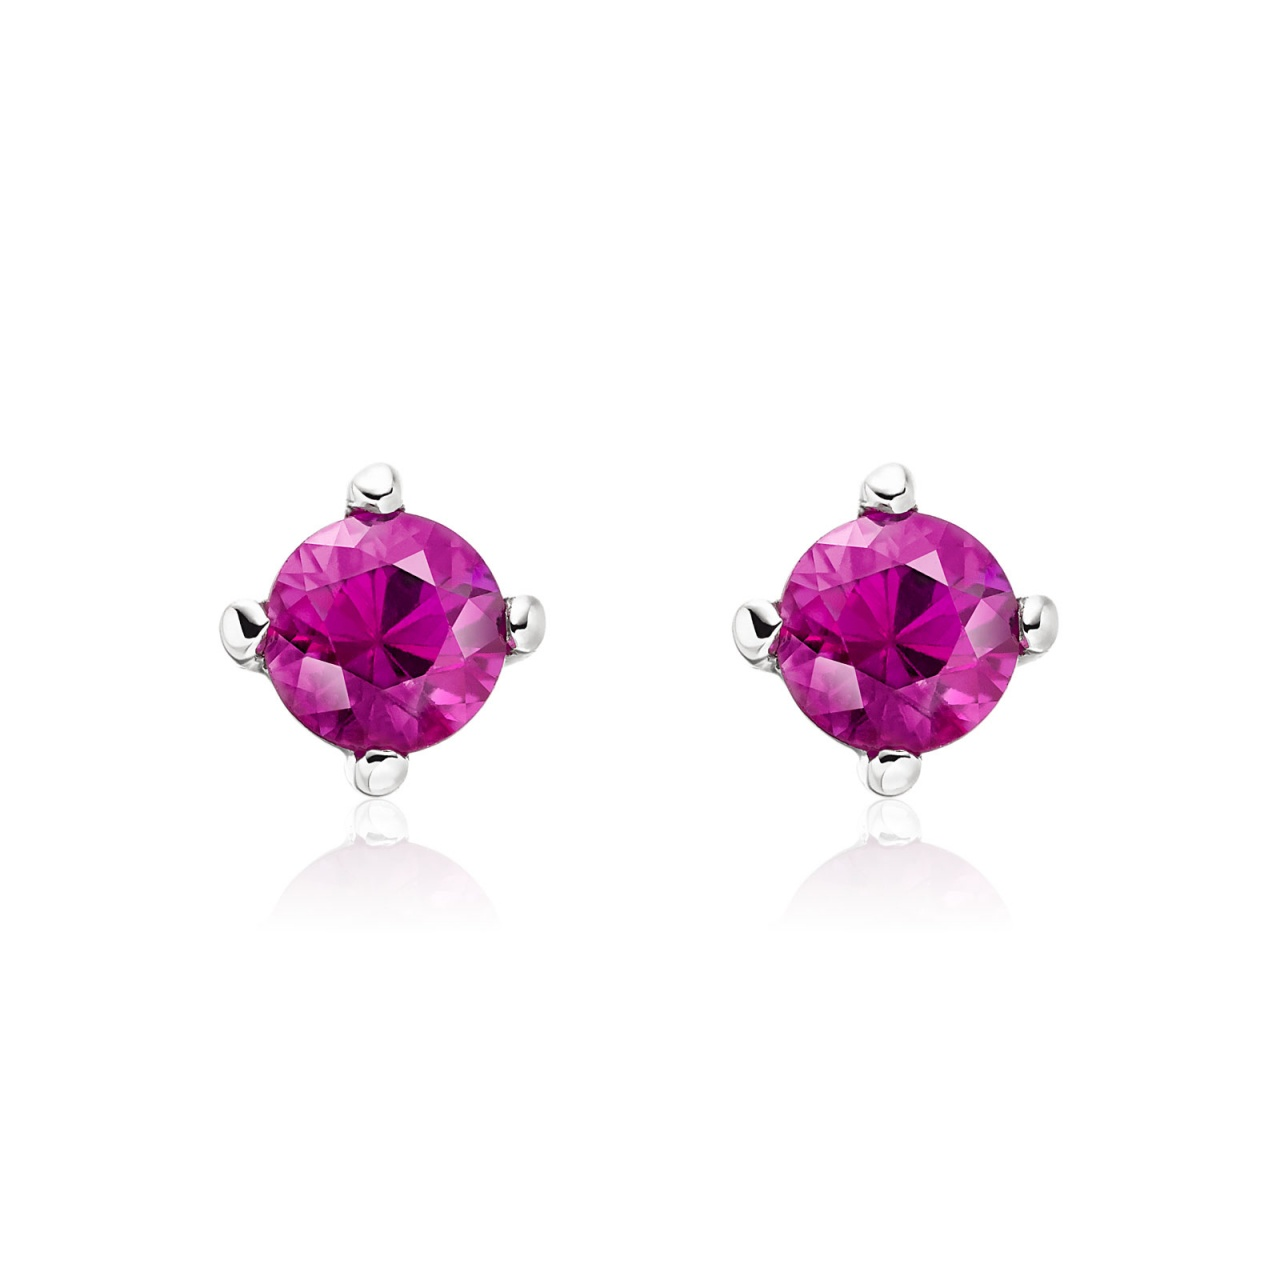 Pink Ruby Stud Earrings in White Gold with Akoya Pearls